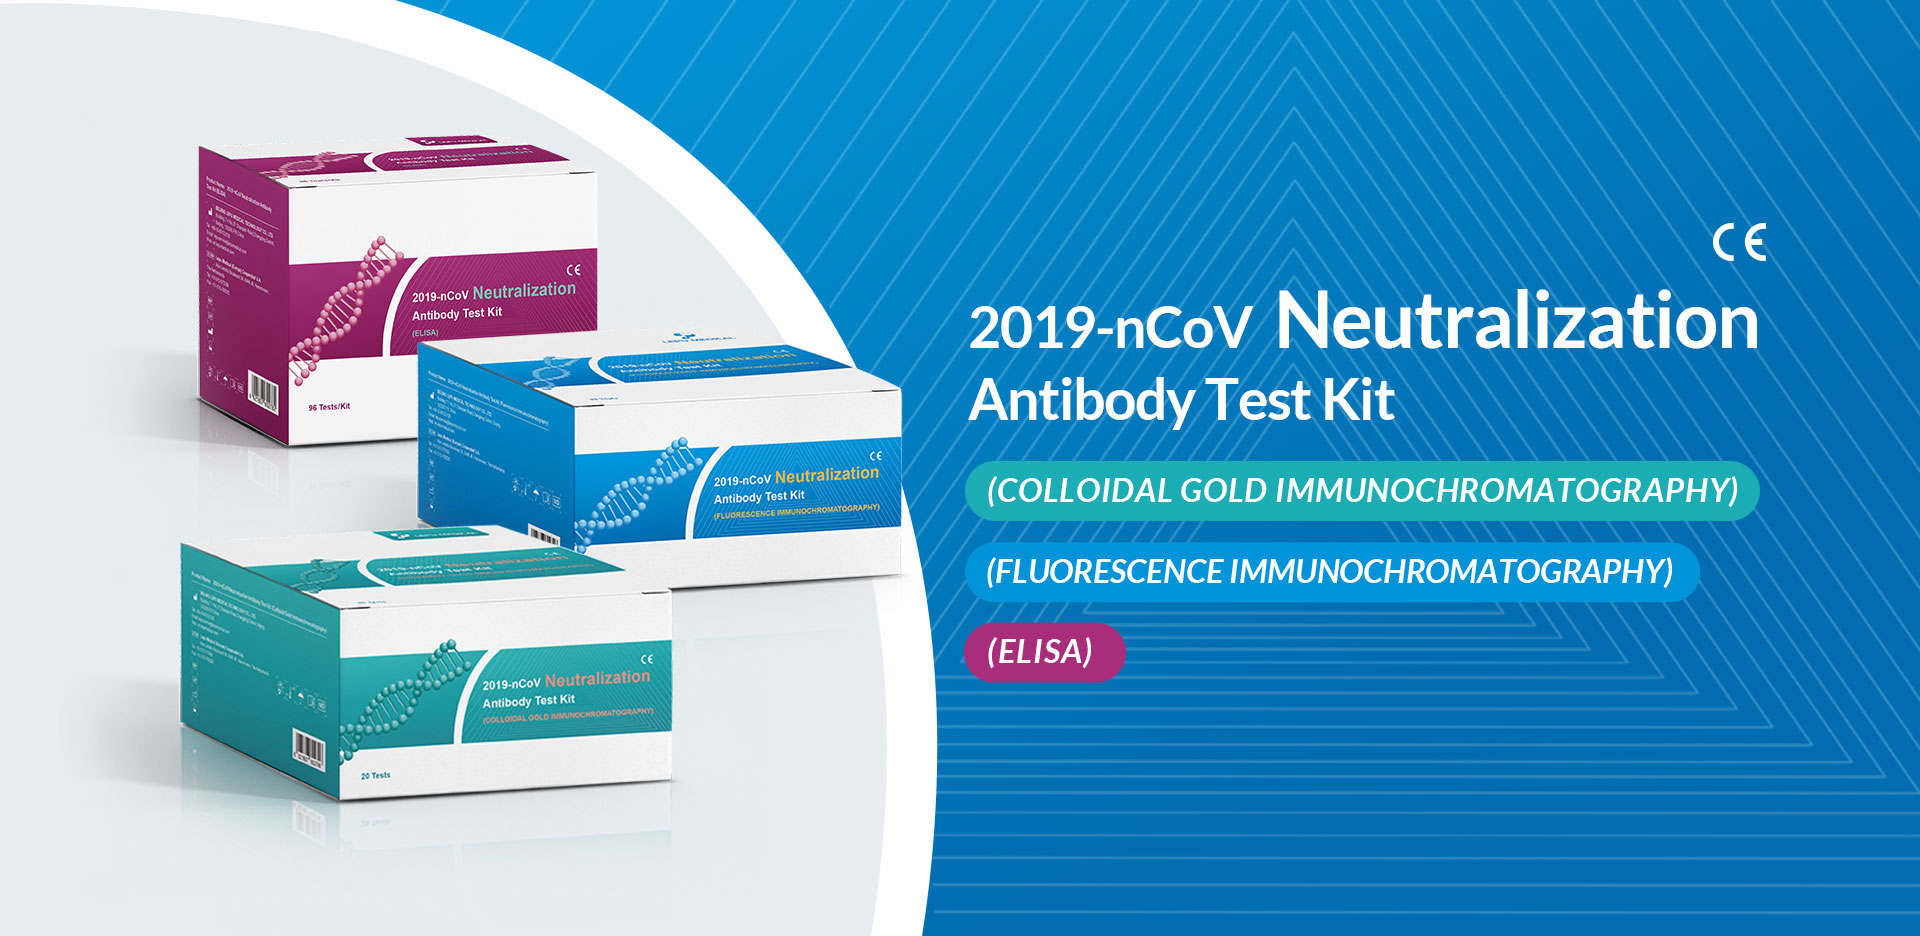 2019-nCoV Neutralization Antibody Test Kit